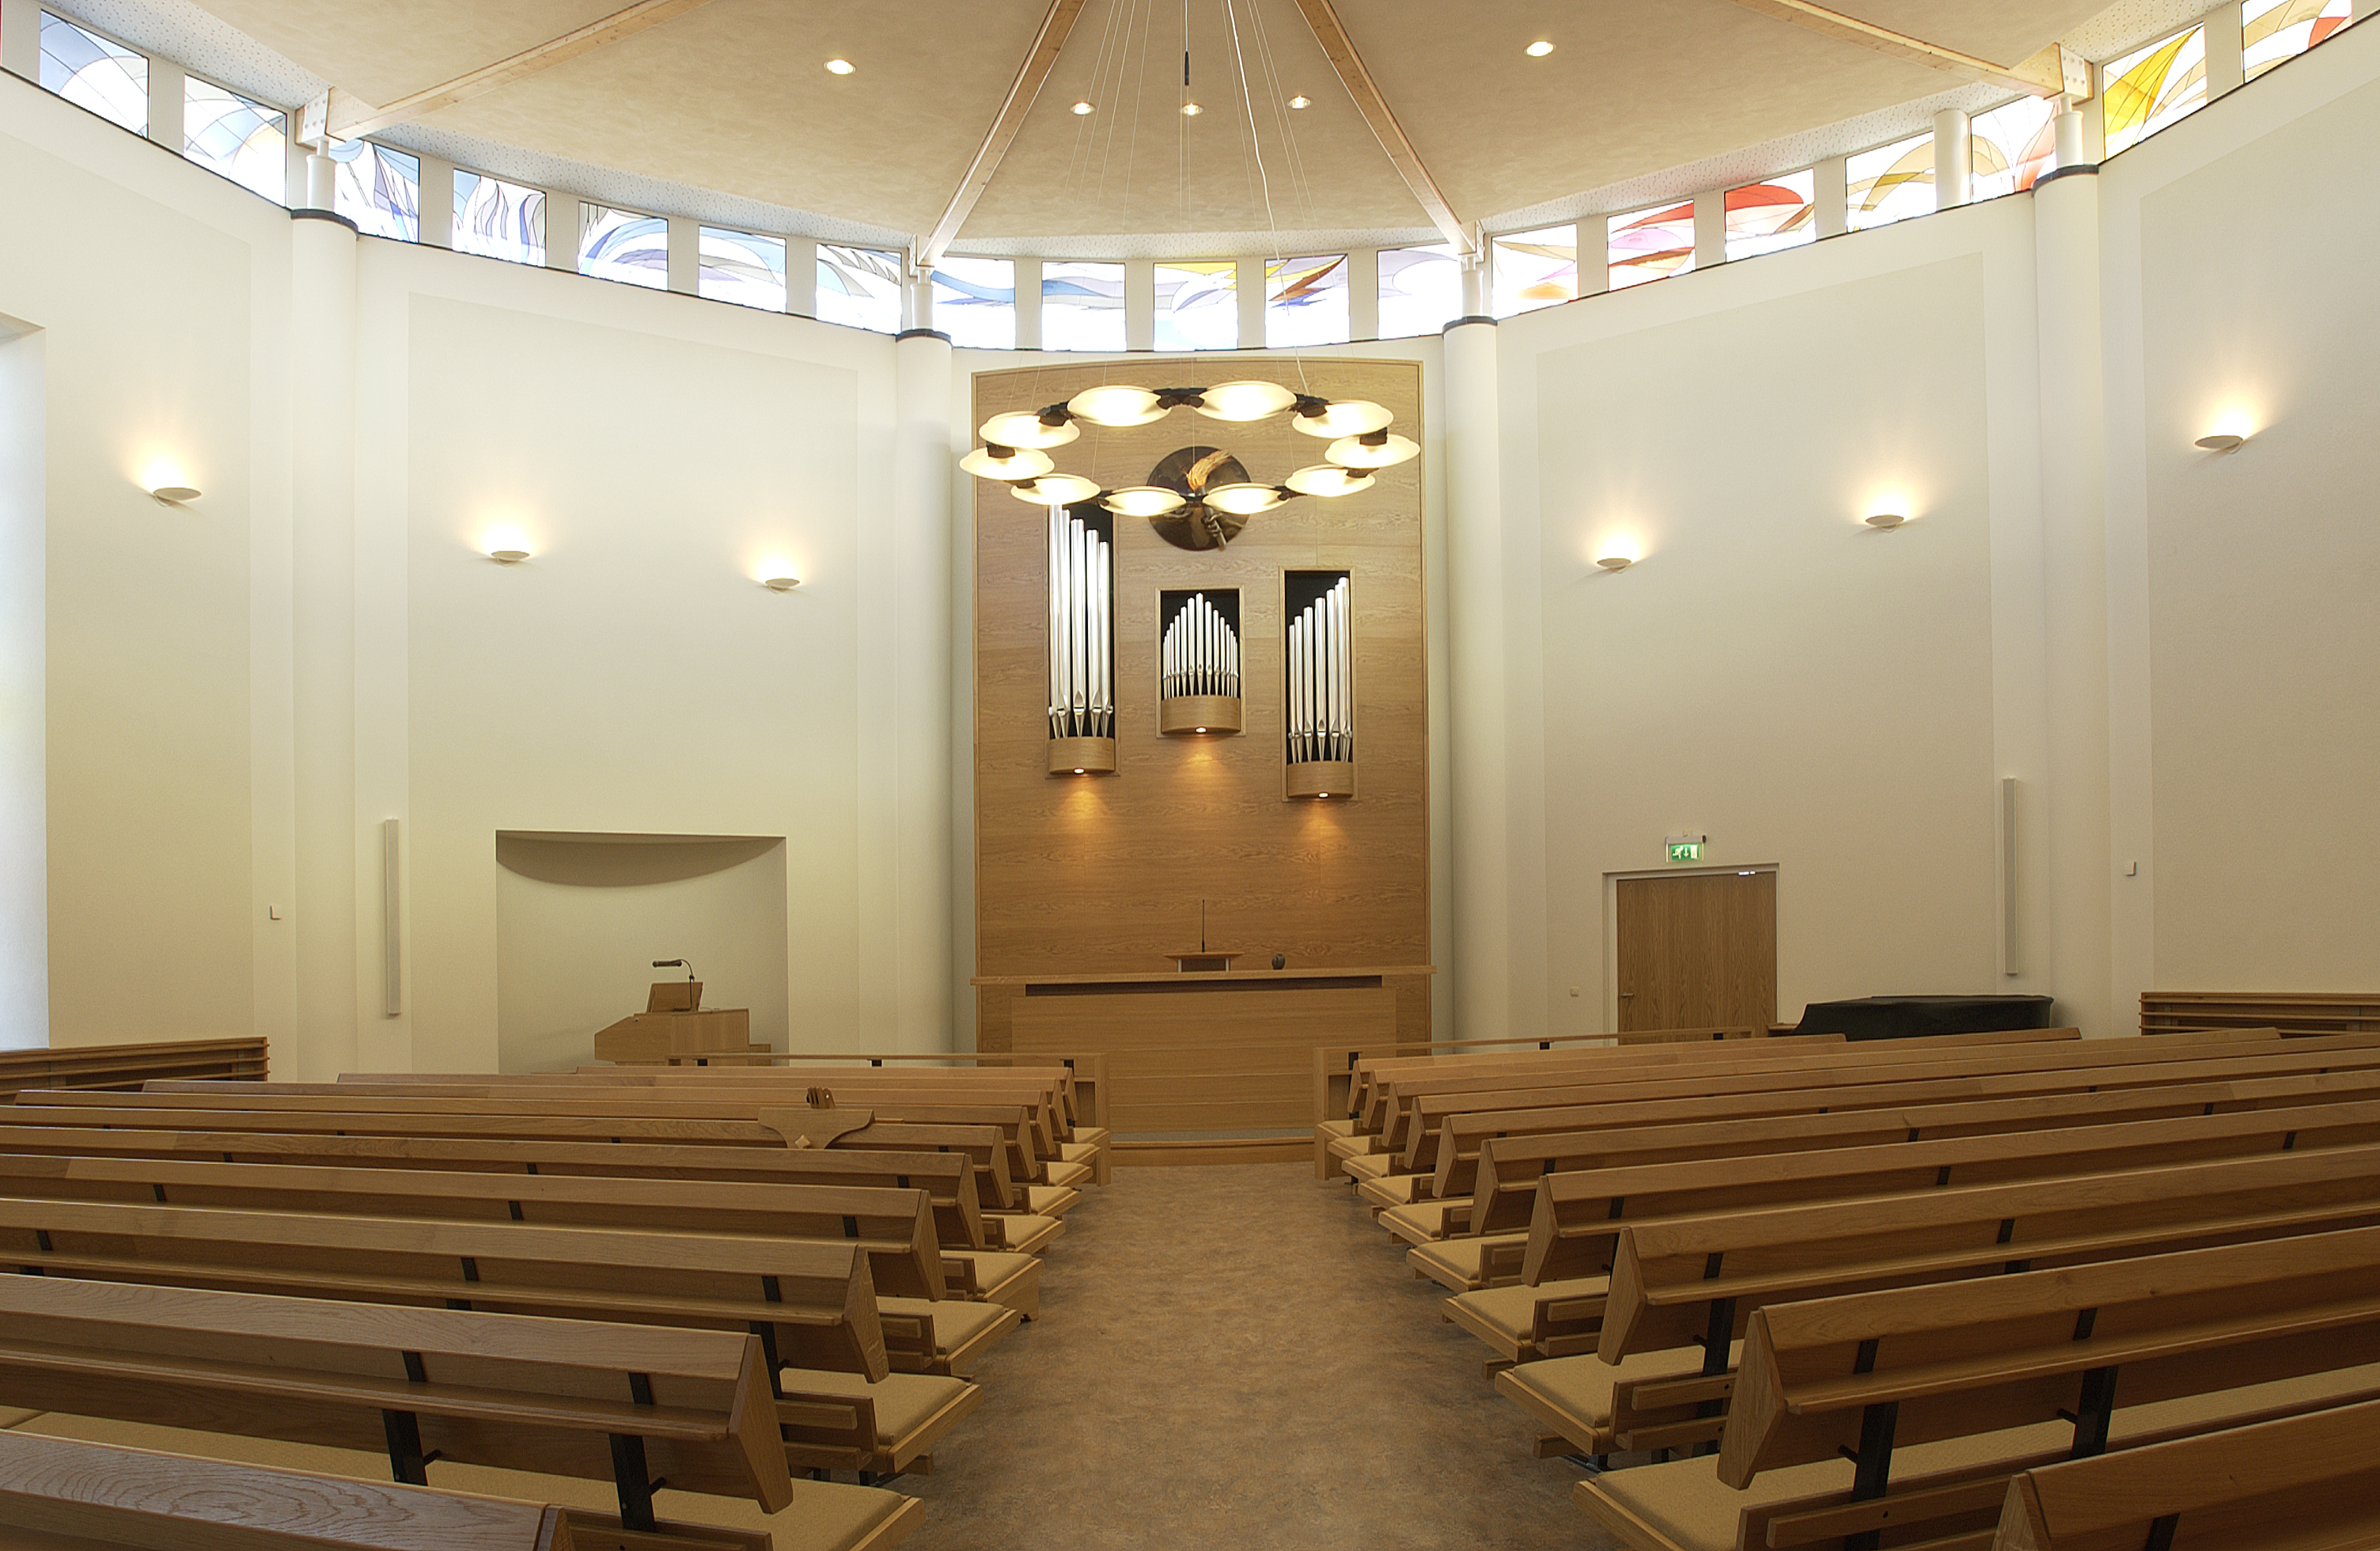 Kerk vlissingen project design lighting bv for Fvb interieur designs bv